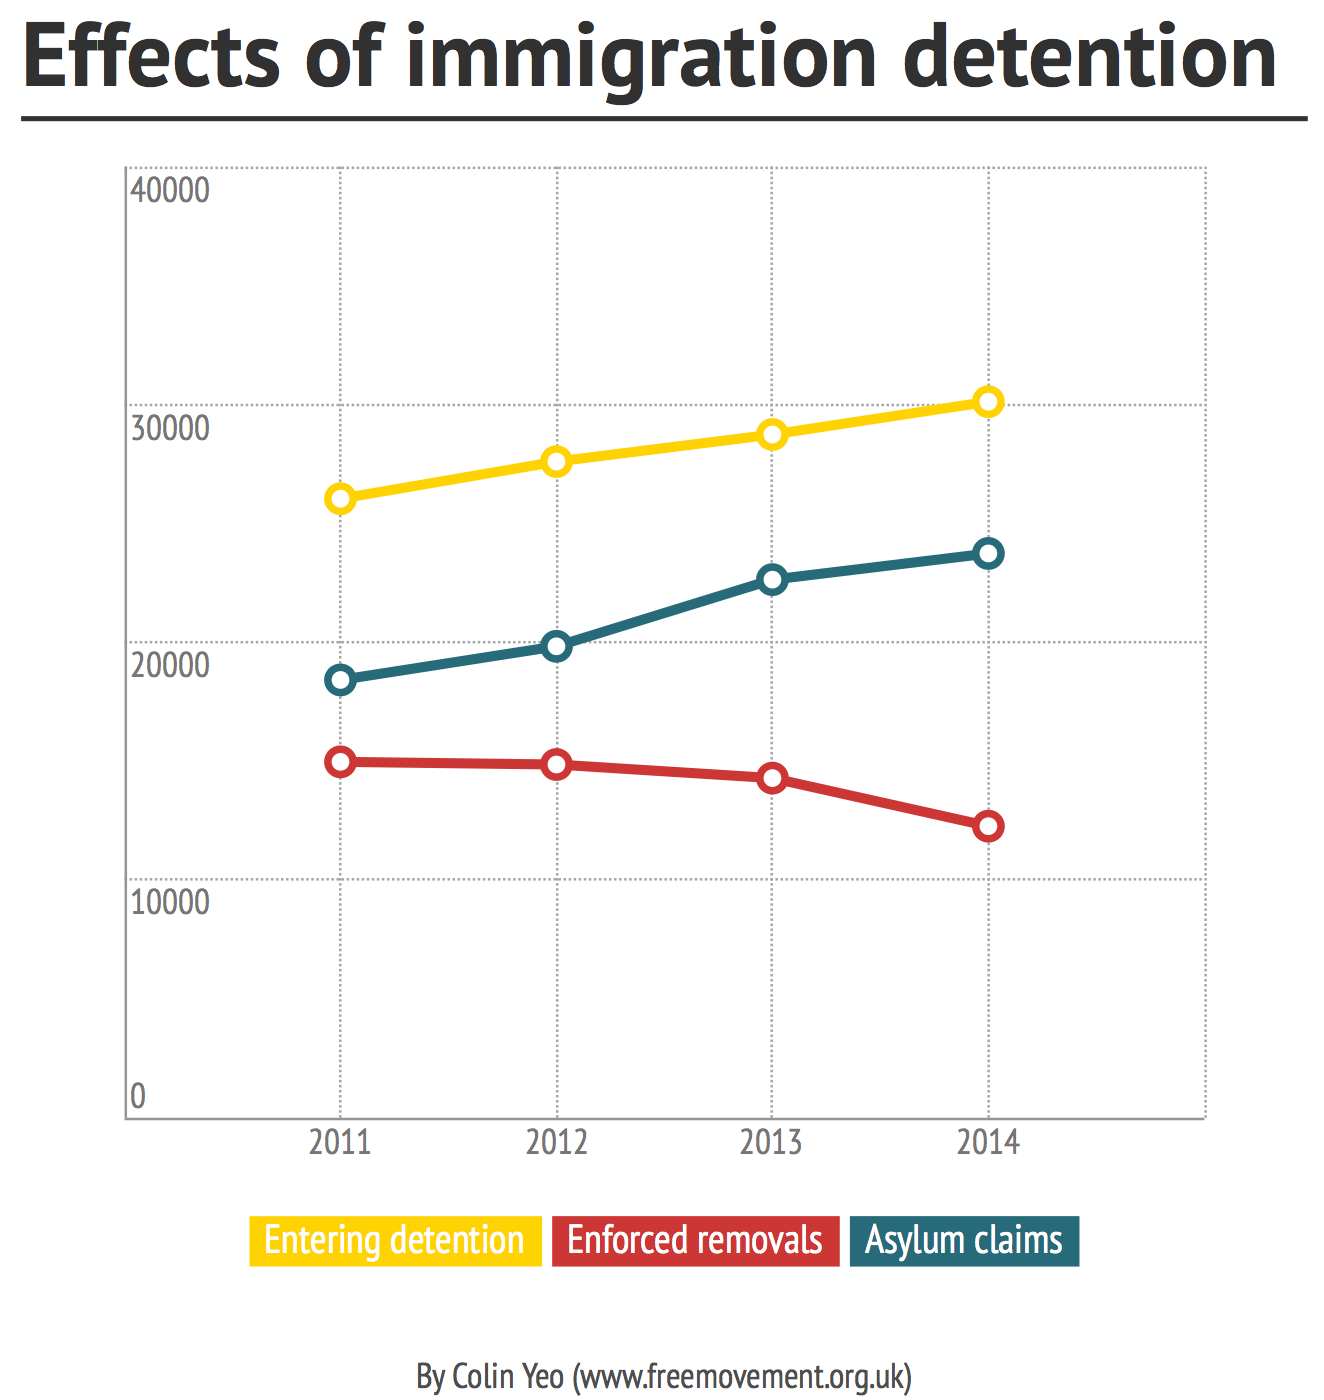 Does detention increase removals and decrease asylum claims?